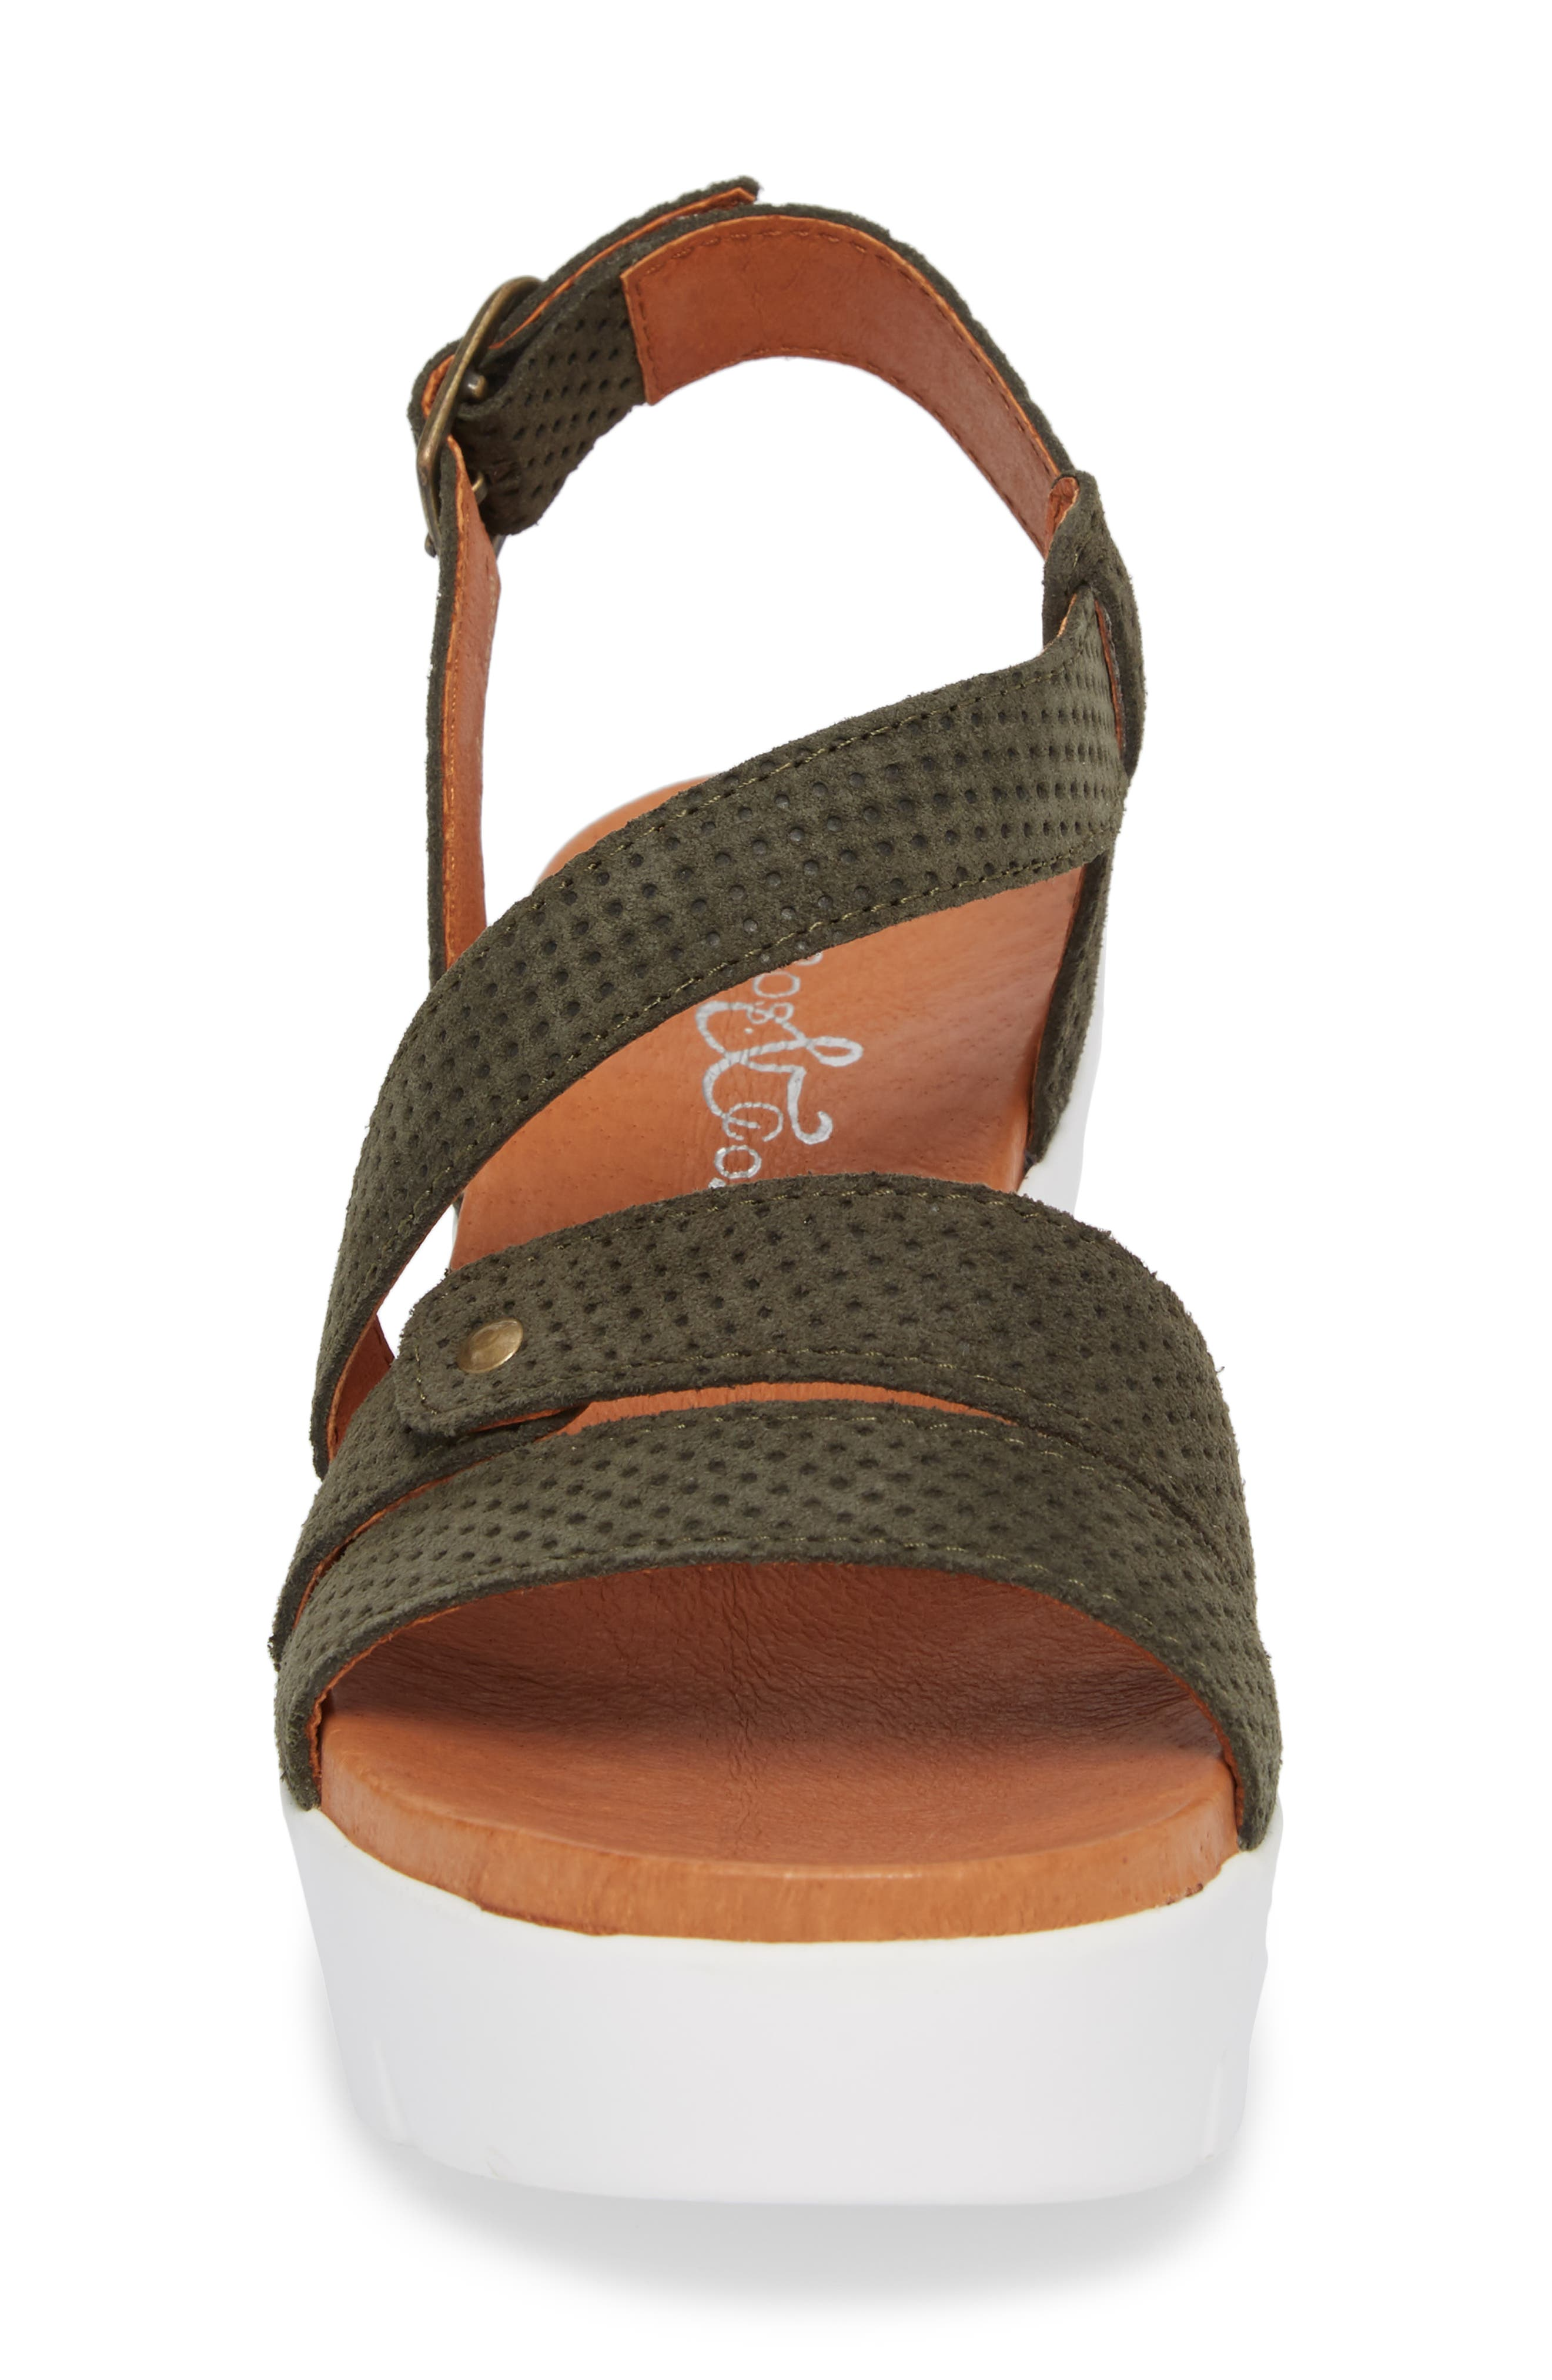 Sierra Platform Wedge Sandal,                             Alternate thumbnail 4, color,                             MINT LEATHER